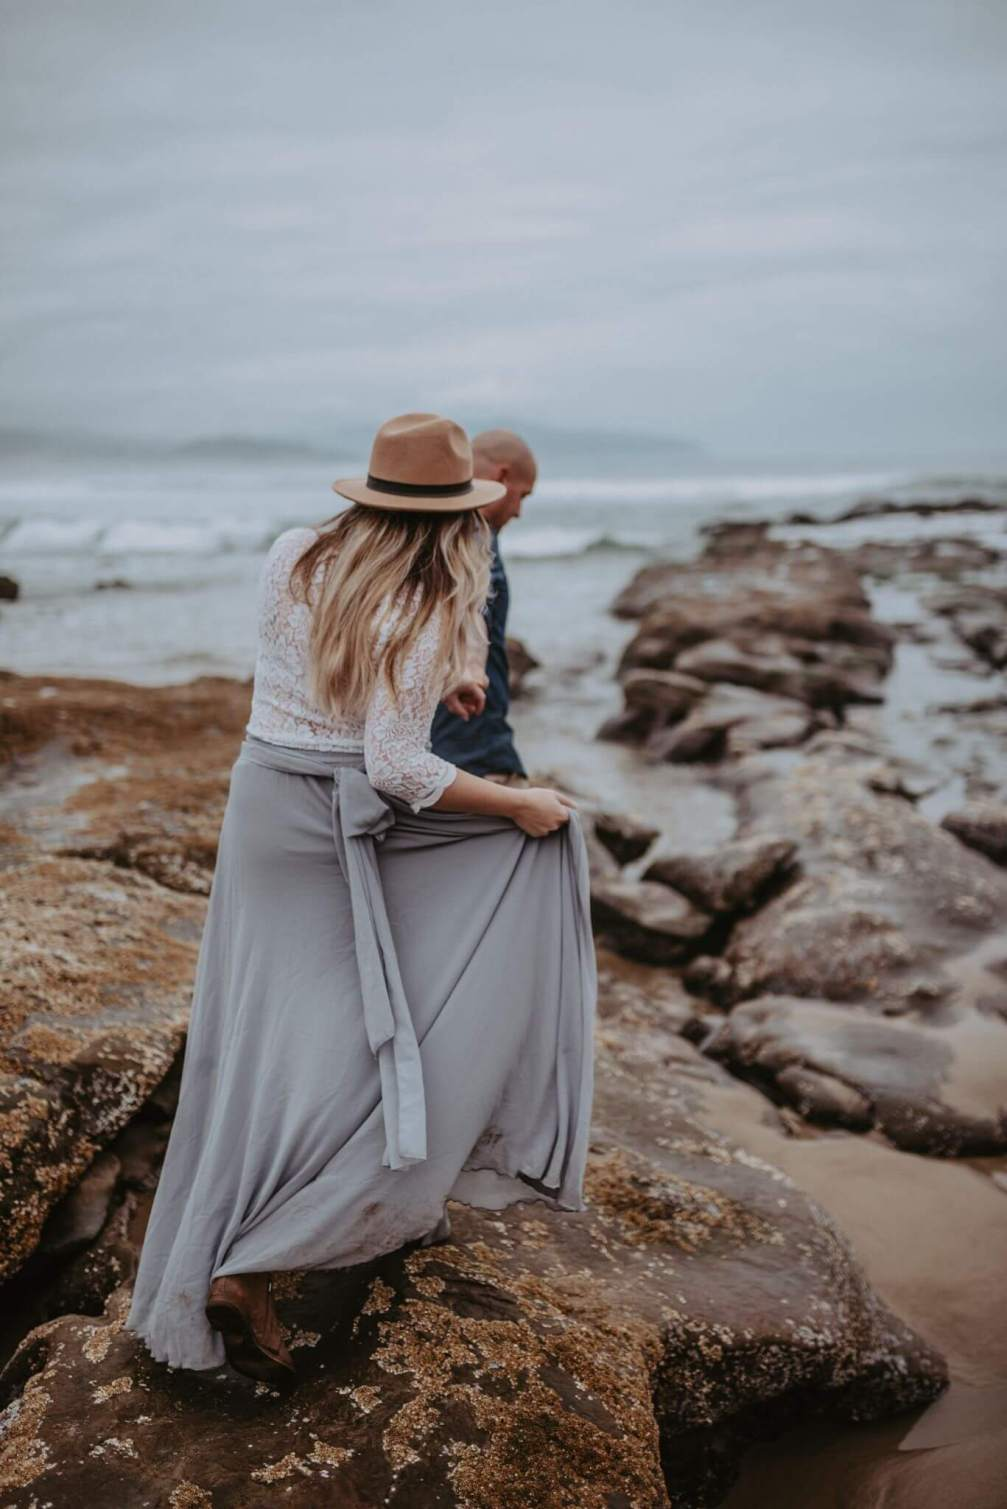 S Photography | Pacific Northwest Adventure Couples Photographer | Cape Kiwanda, Oregon Couples Session